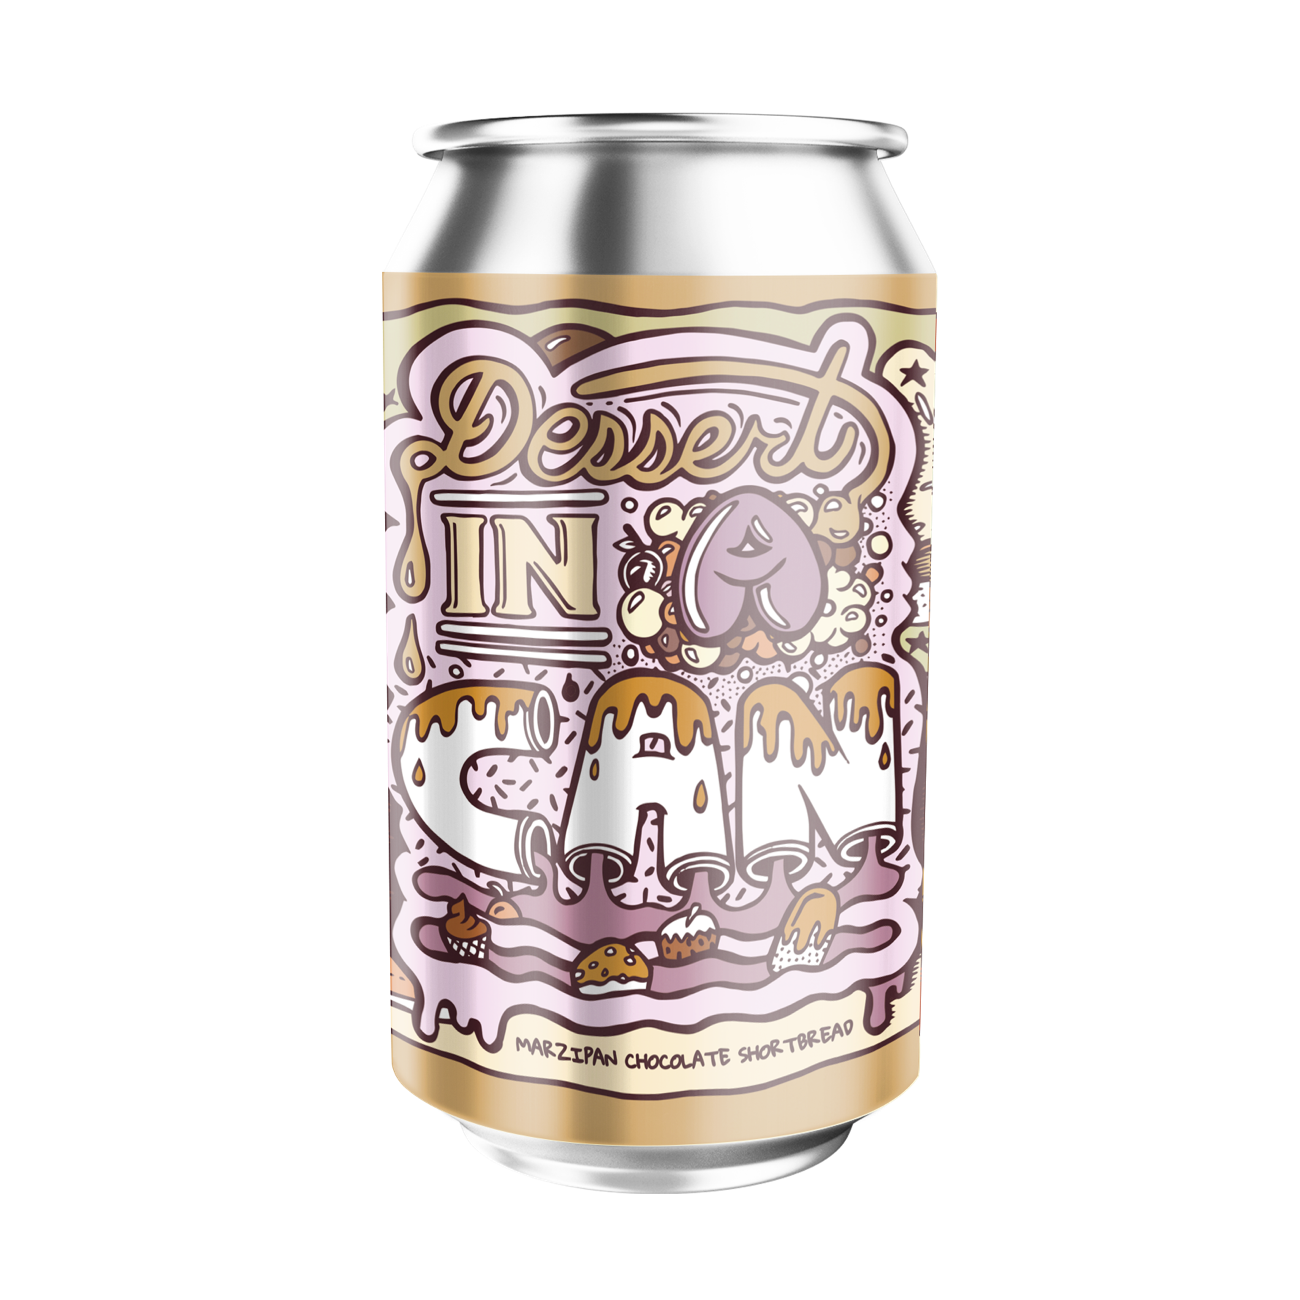 Amundsen Dessert In A Can Marzipan Chocolate Shortbread 10.5% abv 330ml Can